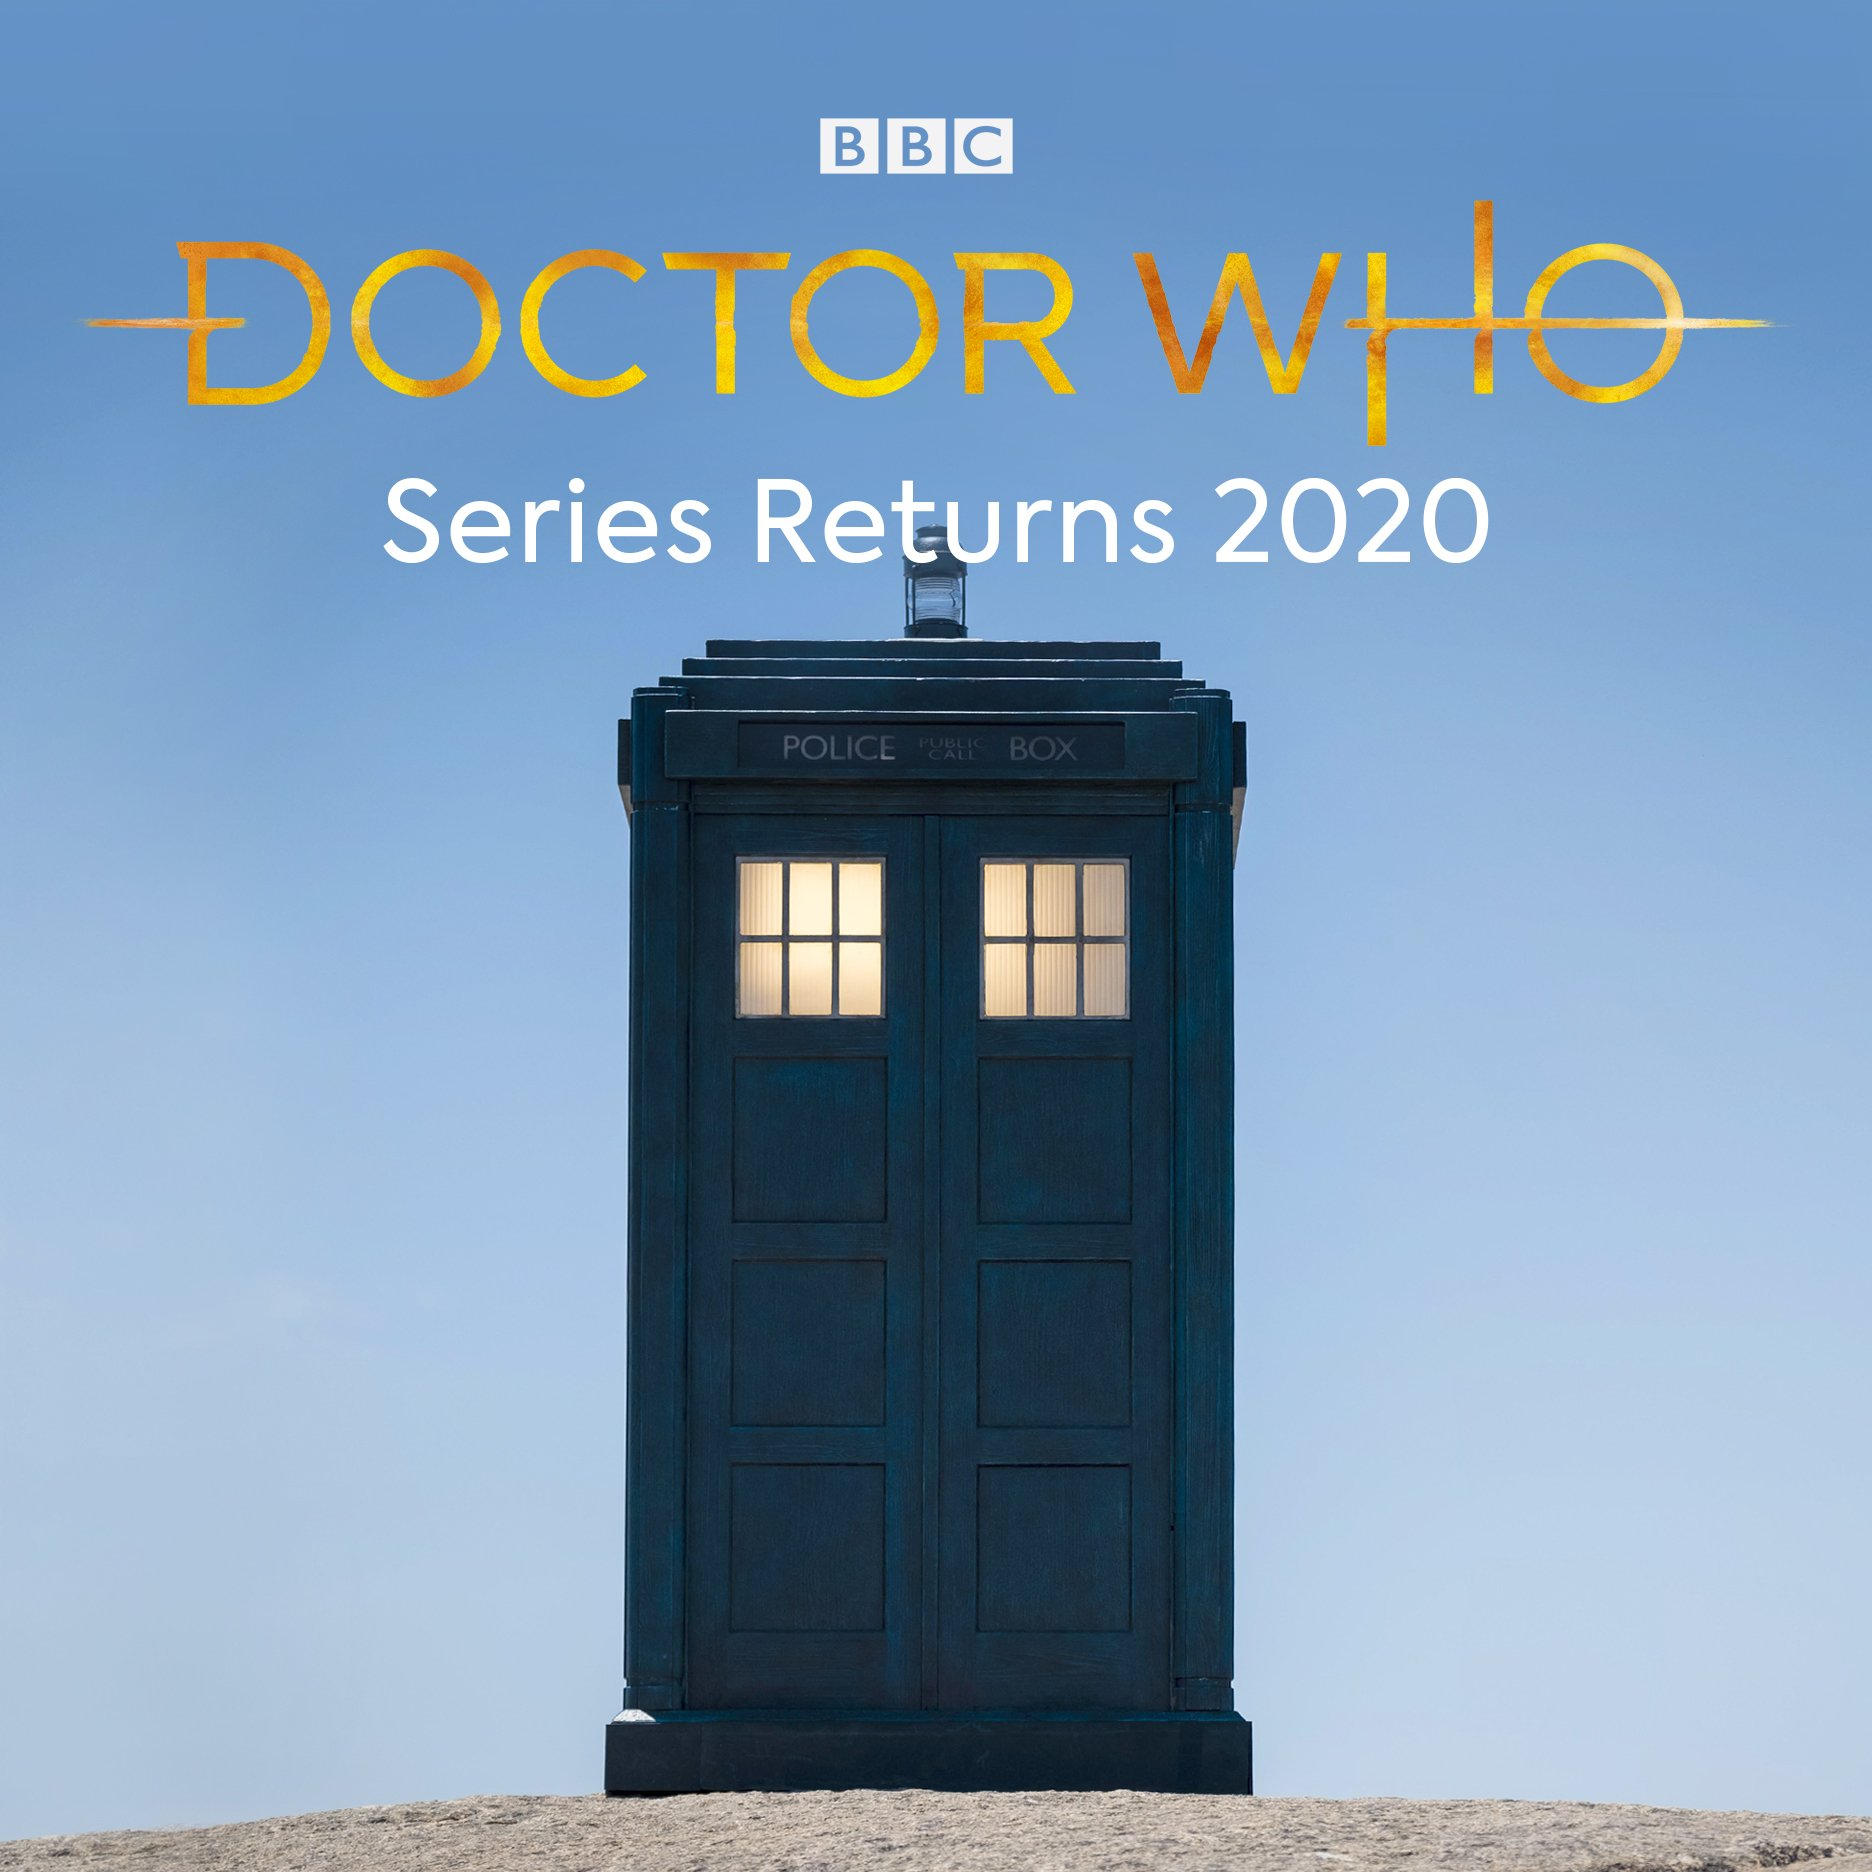 Doctor Who Official on Twitter